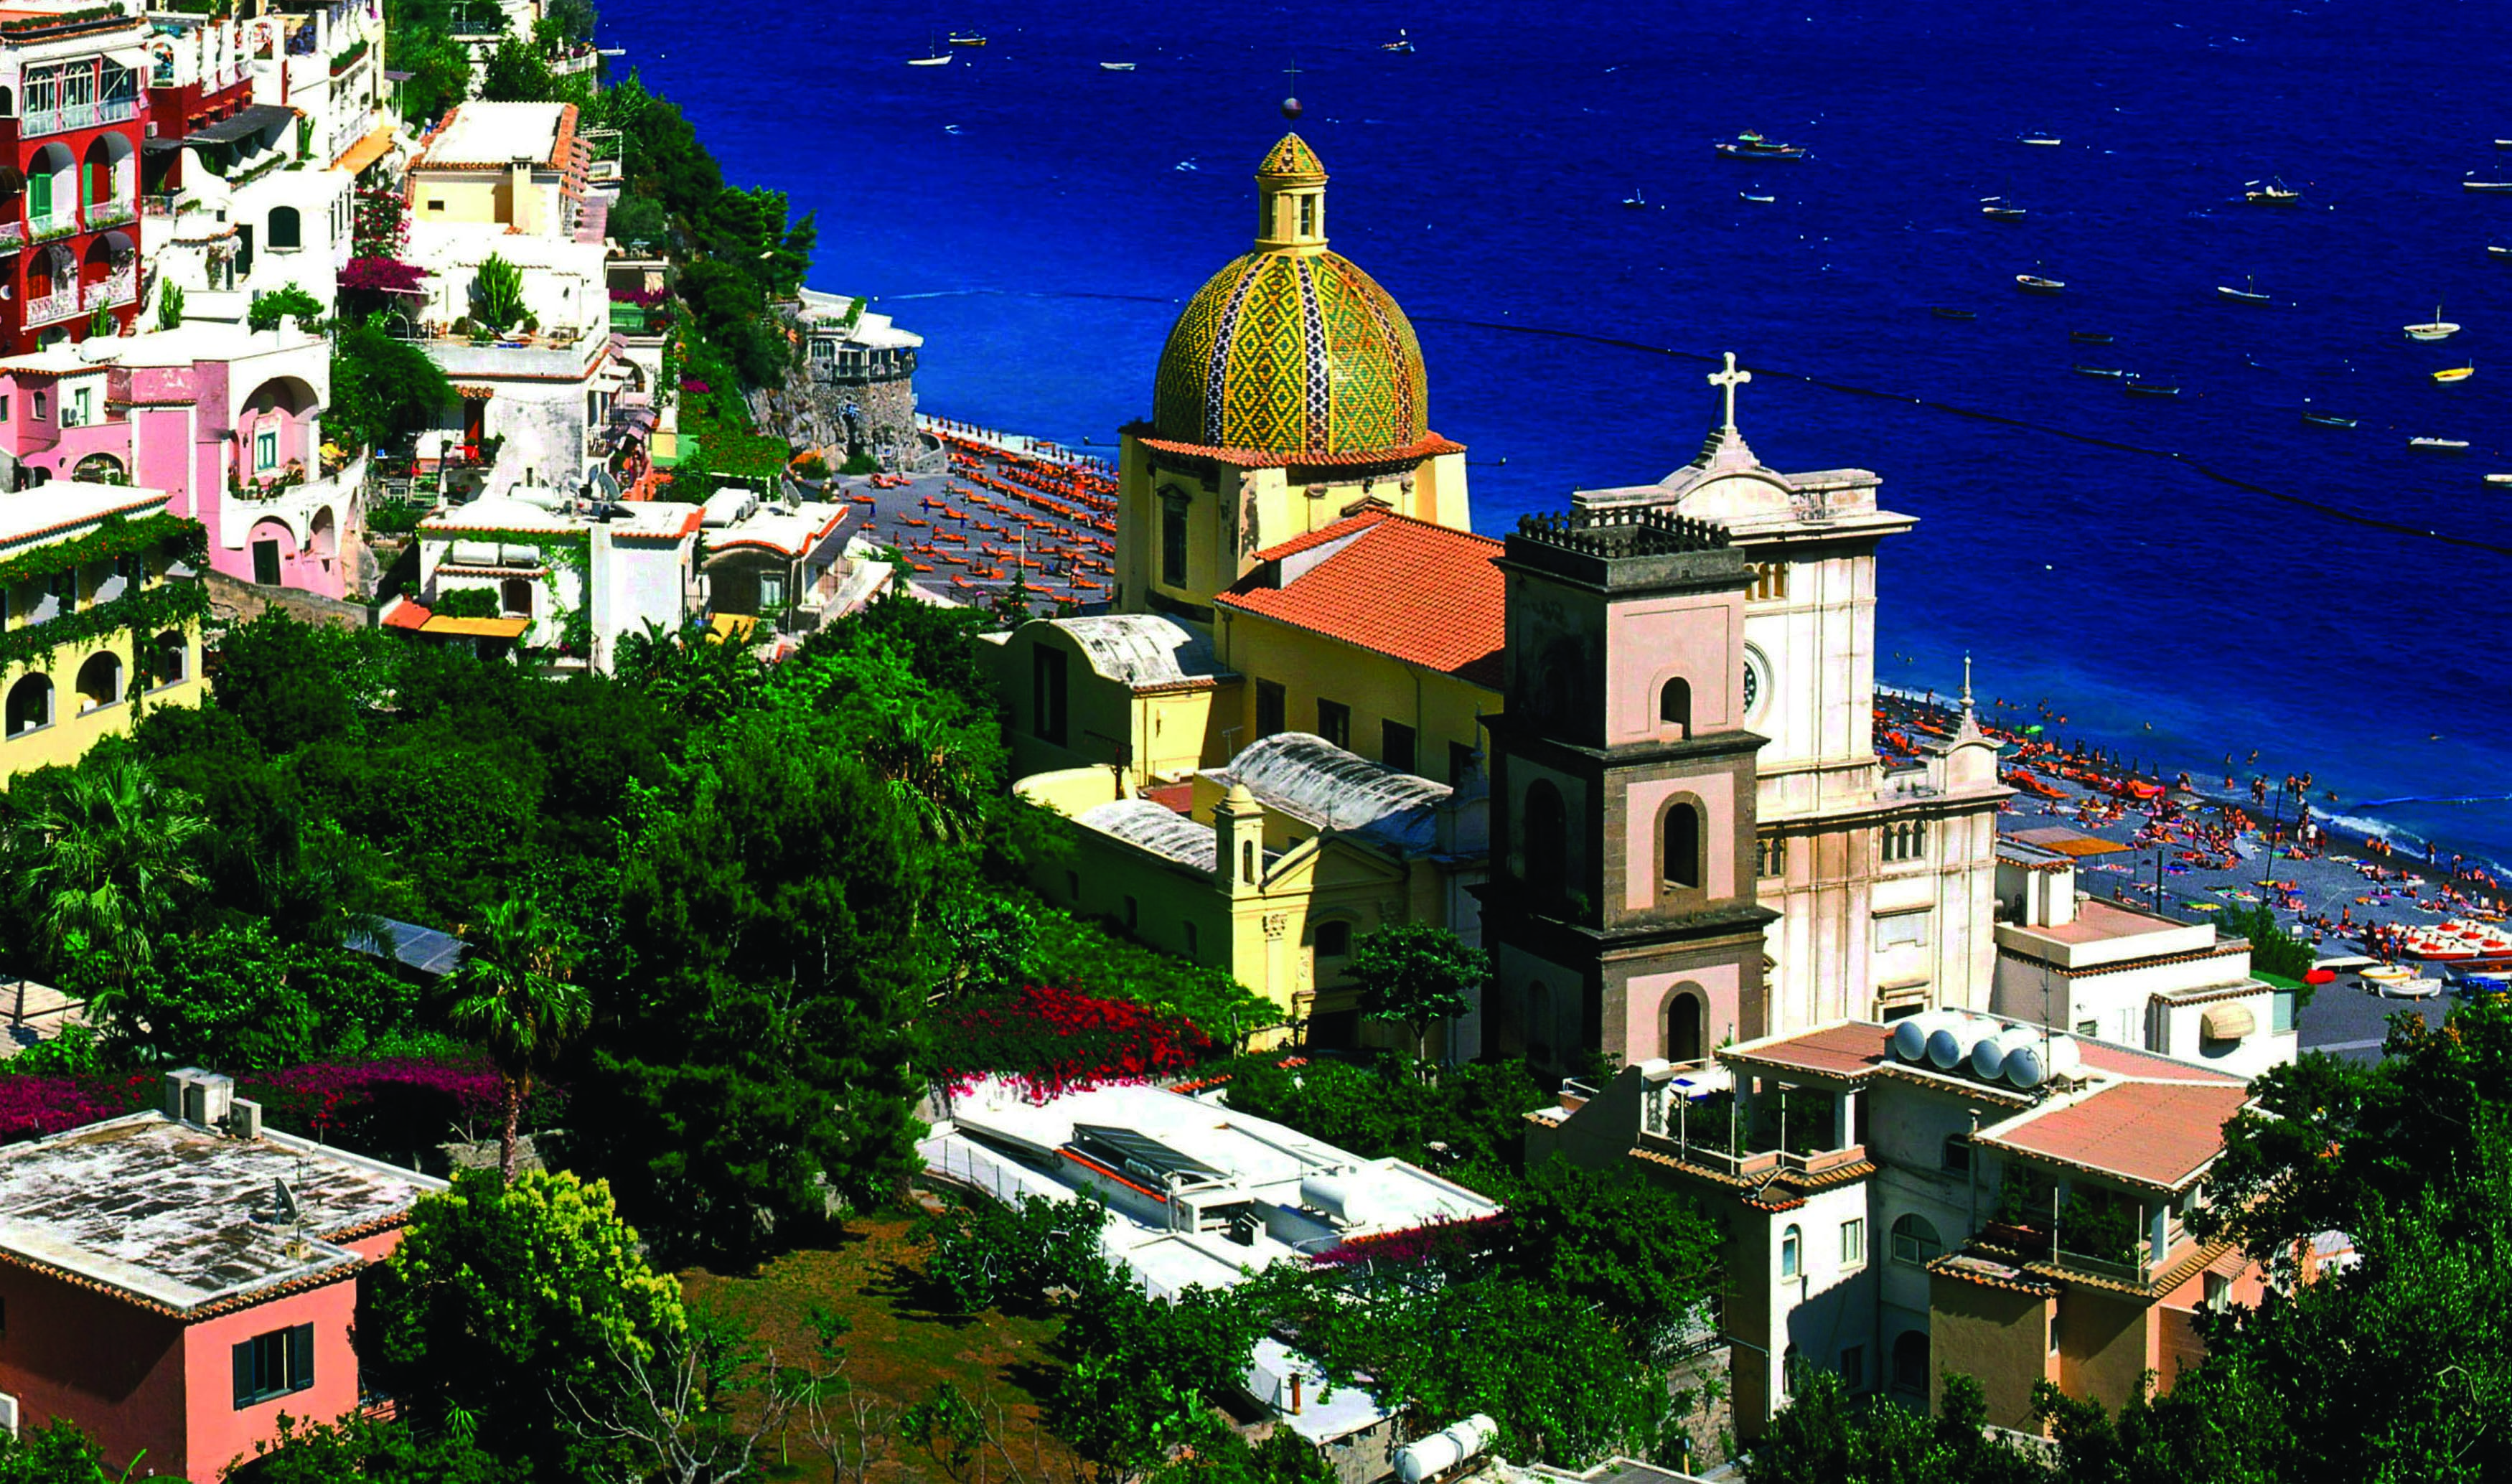 An areal shot of the village of Positano during a sunny day.